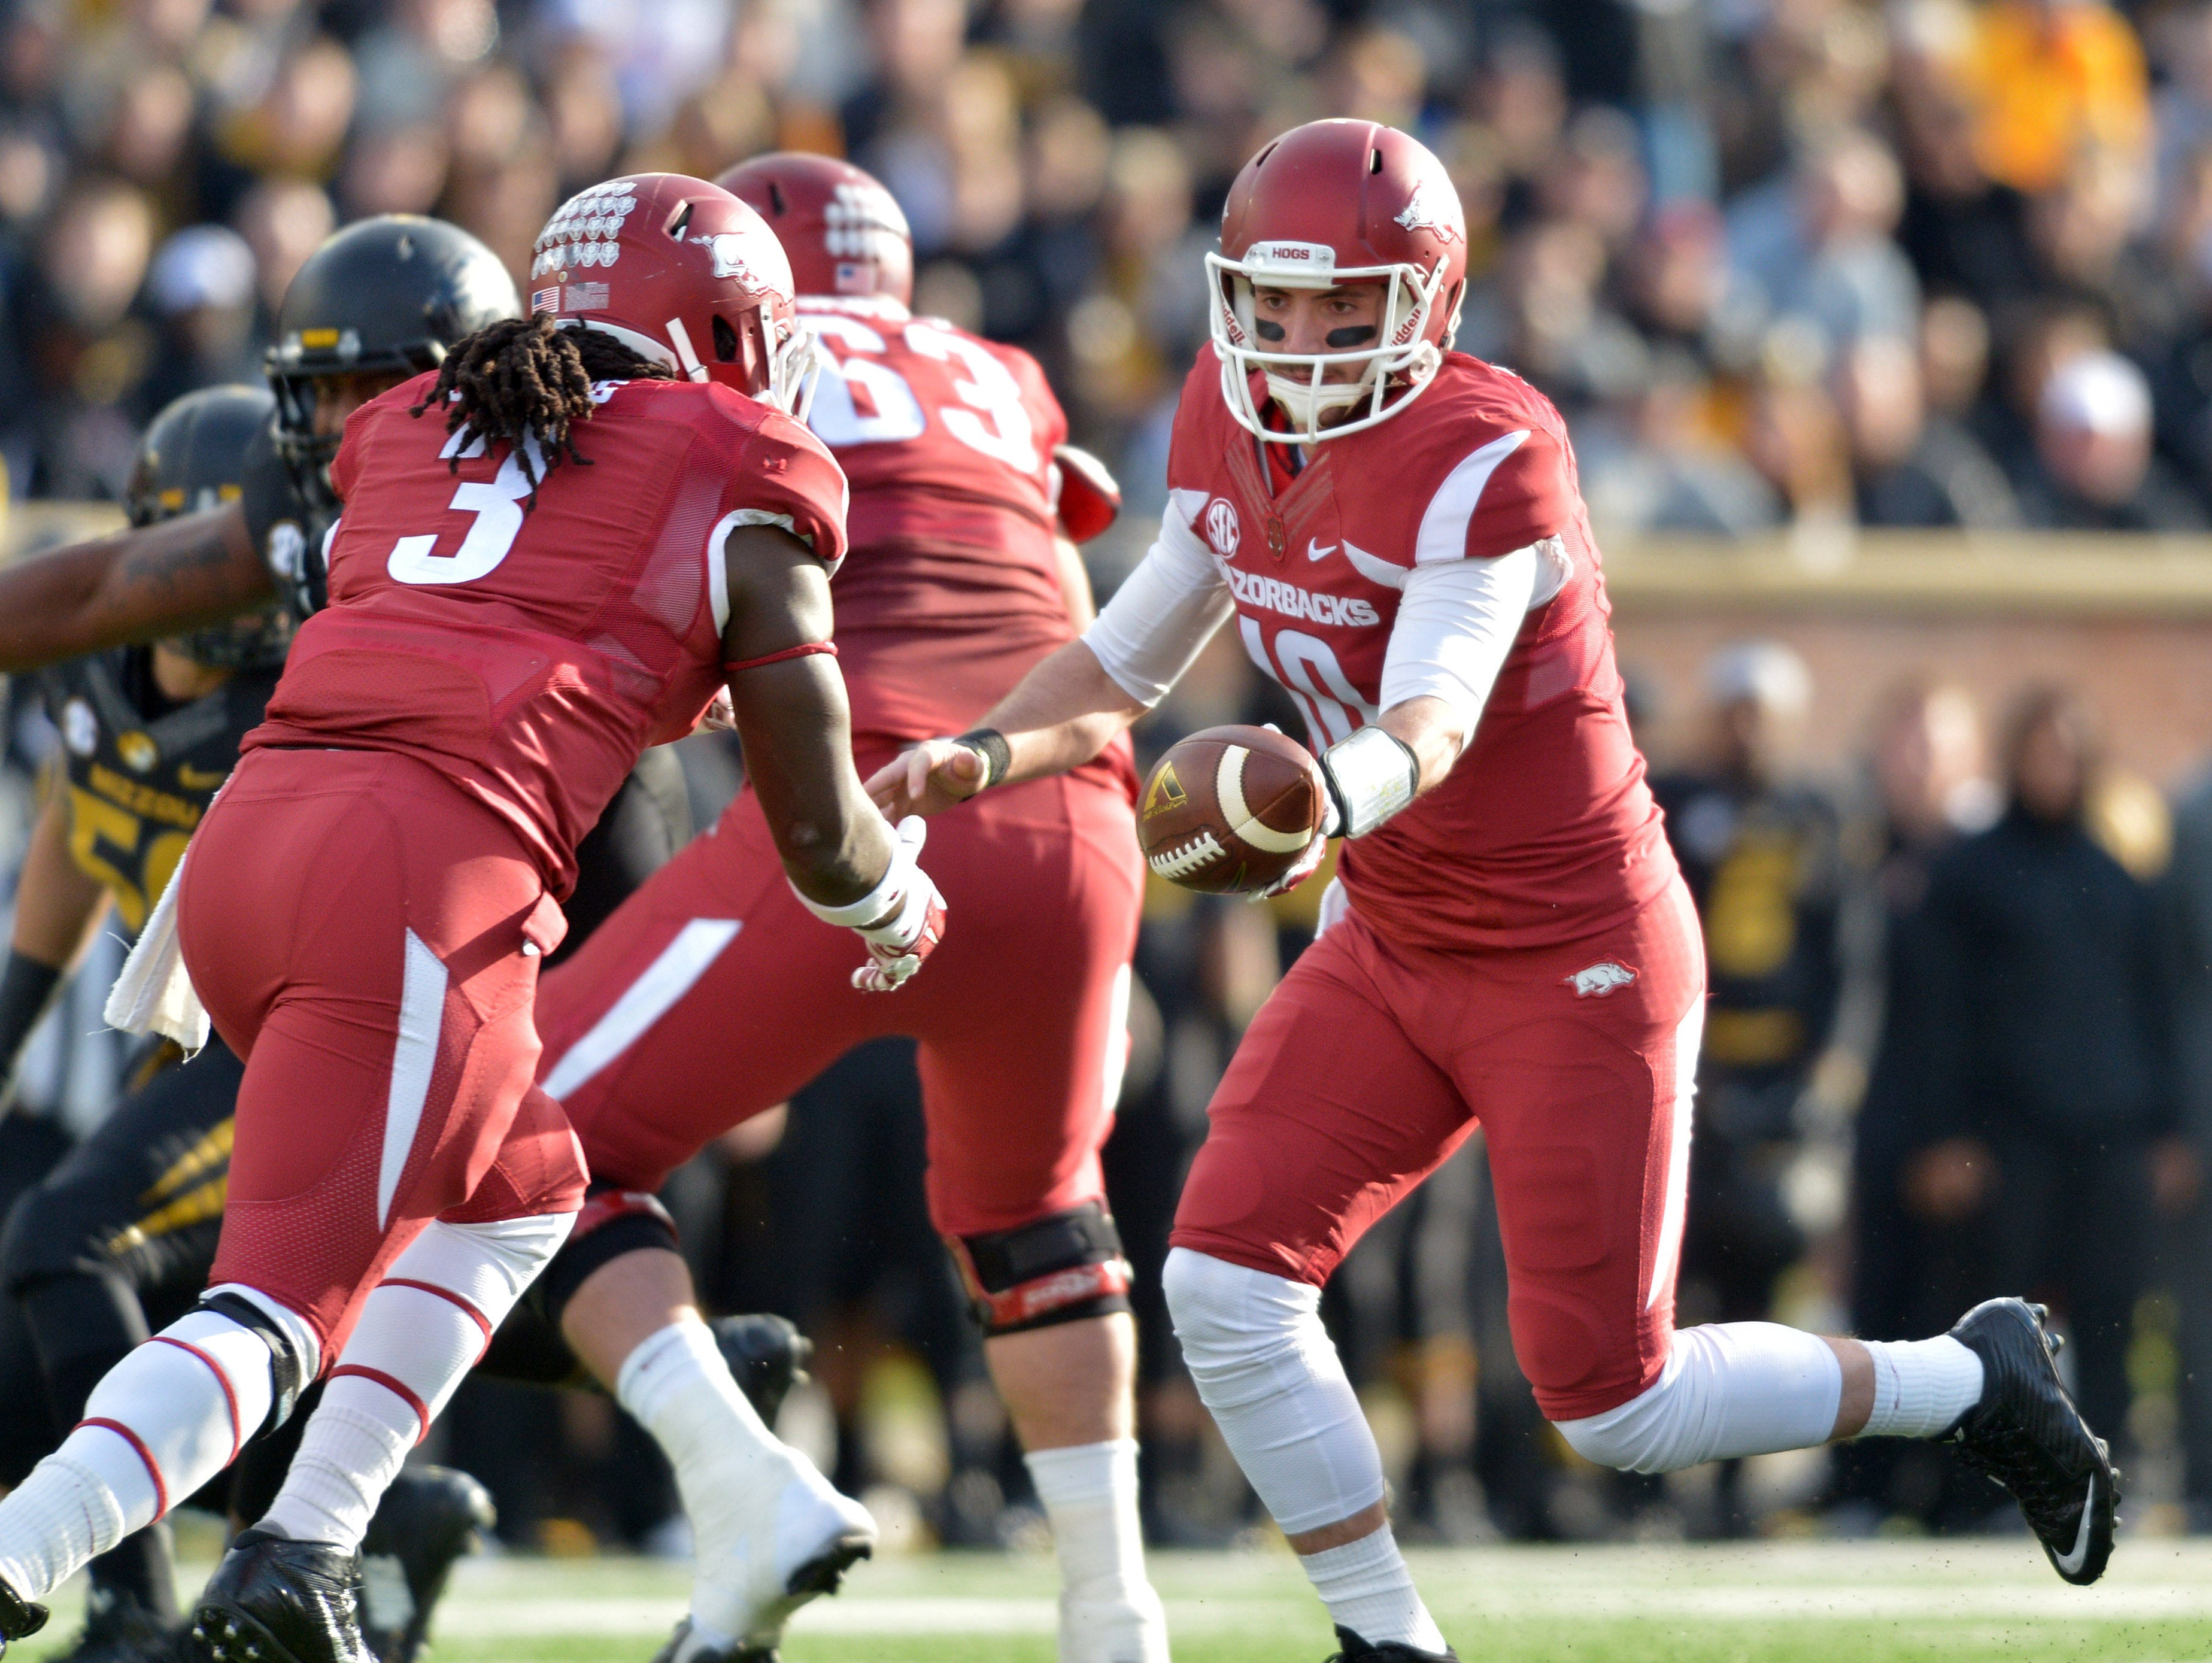 Arkansas quarterback Brandon Allen (10) hands off to running back Alex Collins (3) during the first half against Missouri at Faurot Field. Collins rushed 10 times for 70 yards in a scrimmage on Saturday.